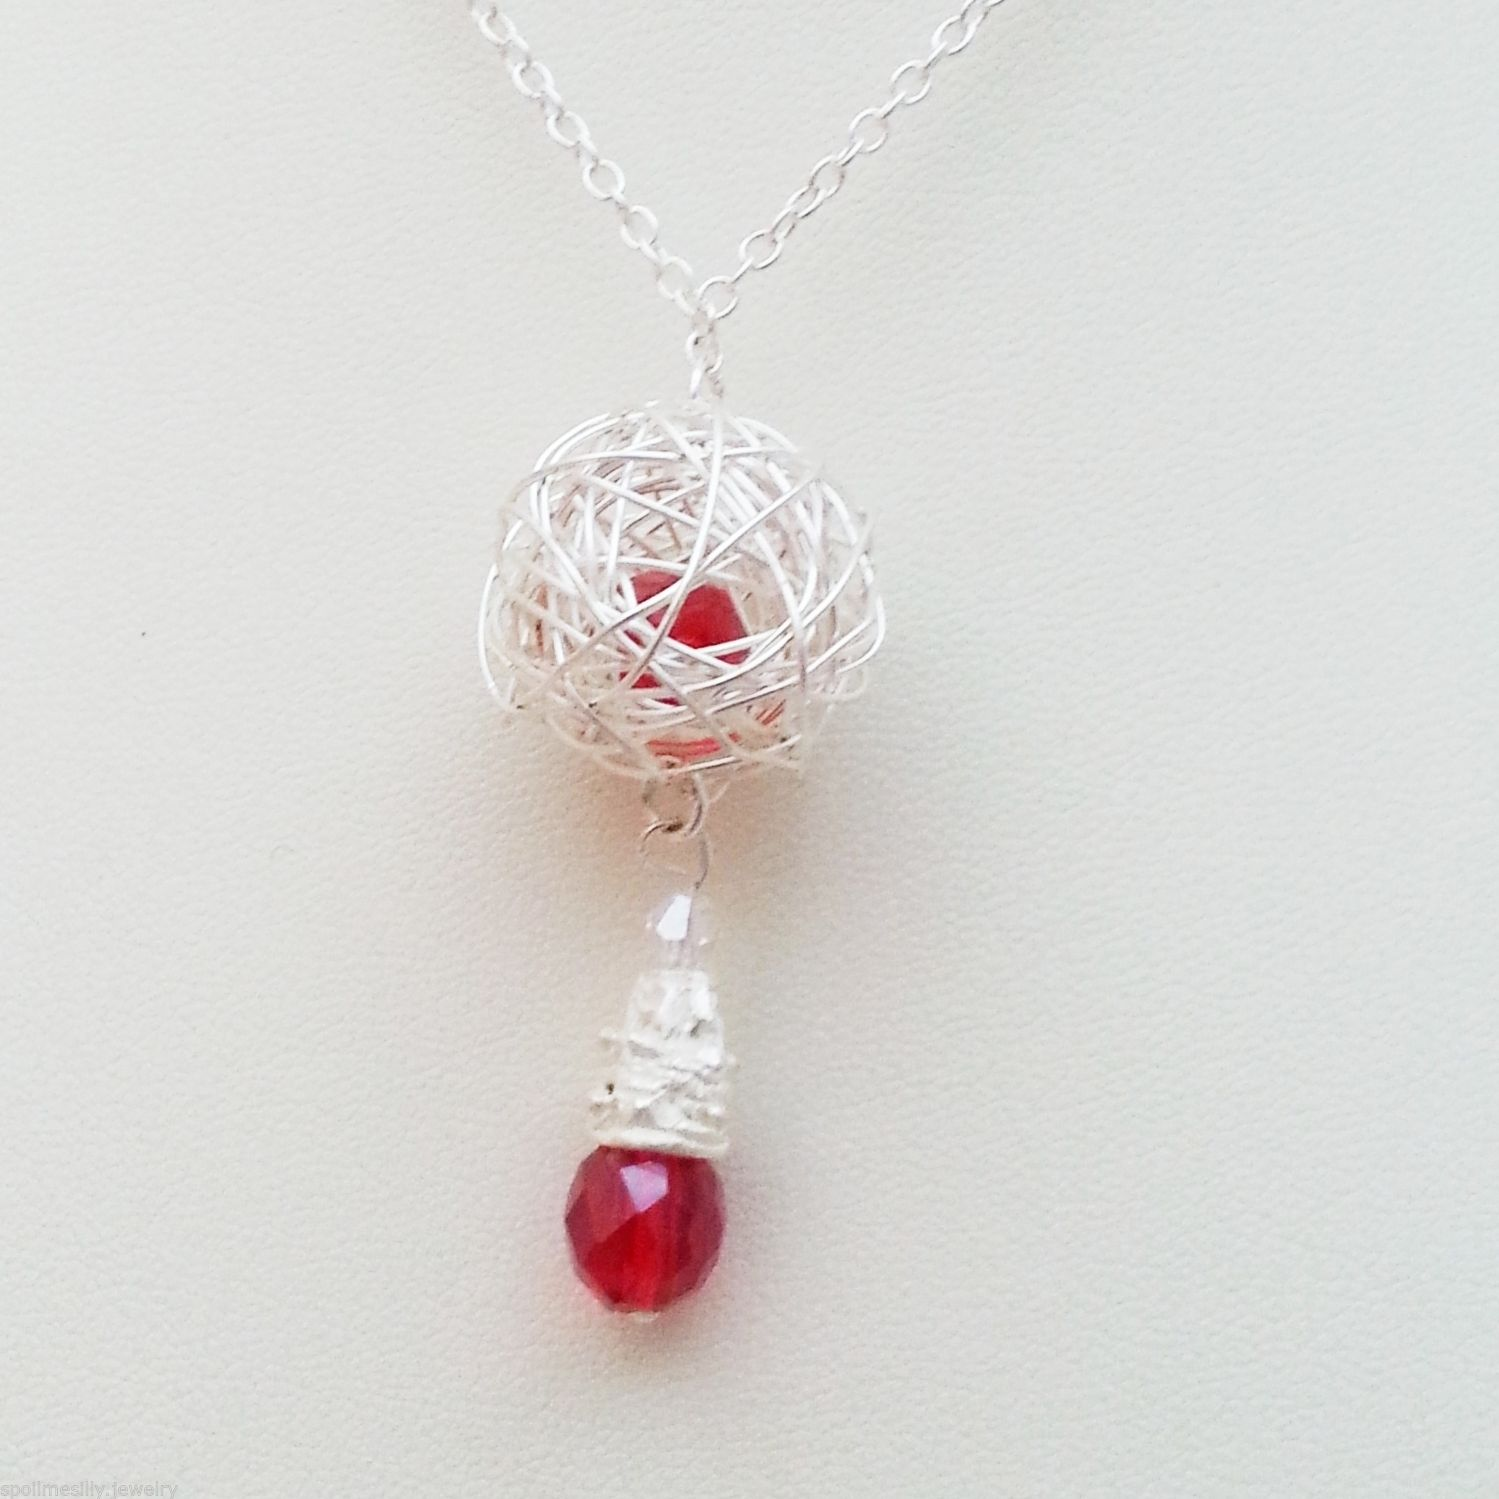 Jewellery-16-18-Red-Faceted-Glass-Bead-Hand-Made-Silver-Wire-Necklace-Woman-New-161364022908-4